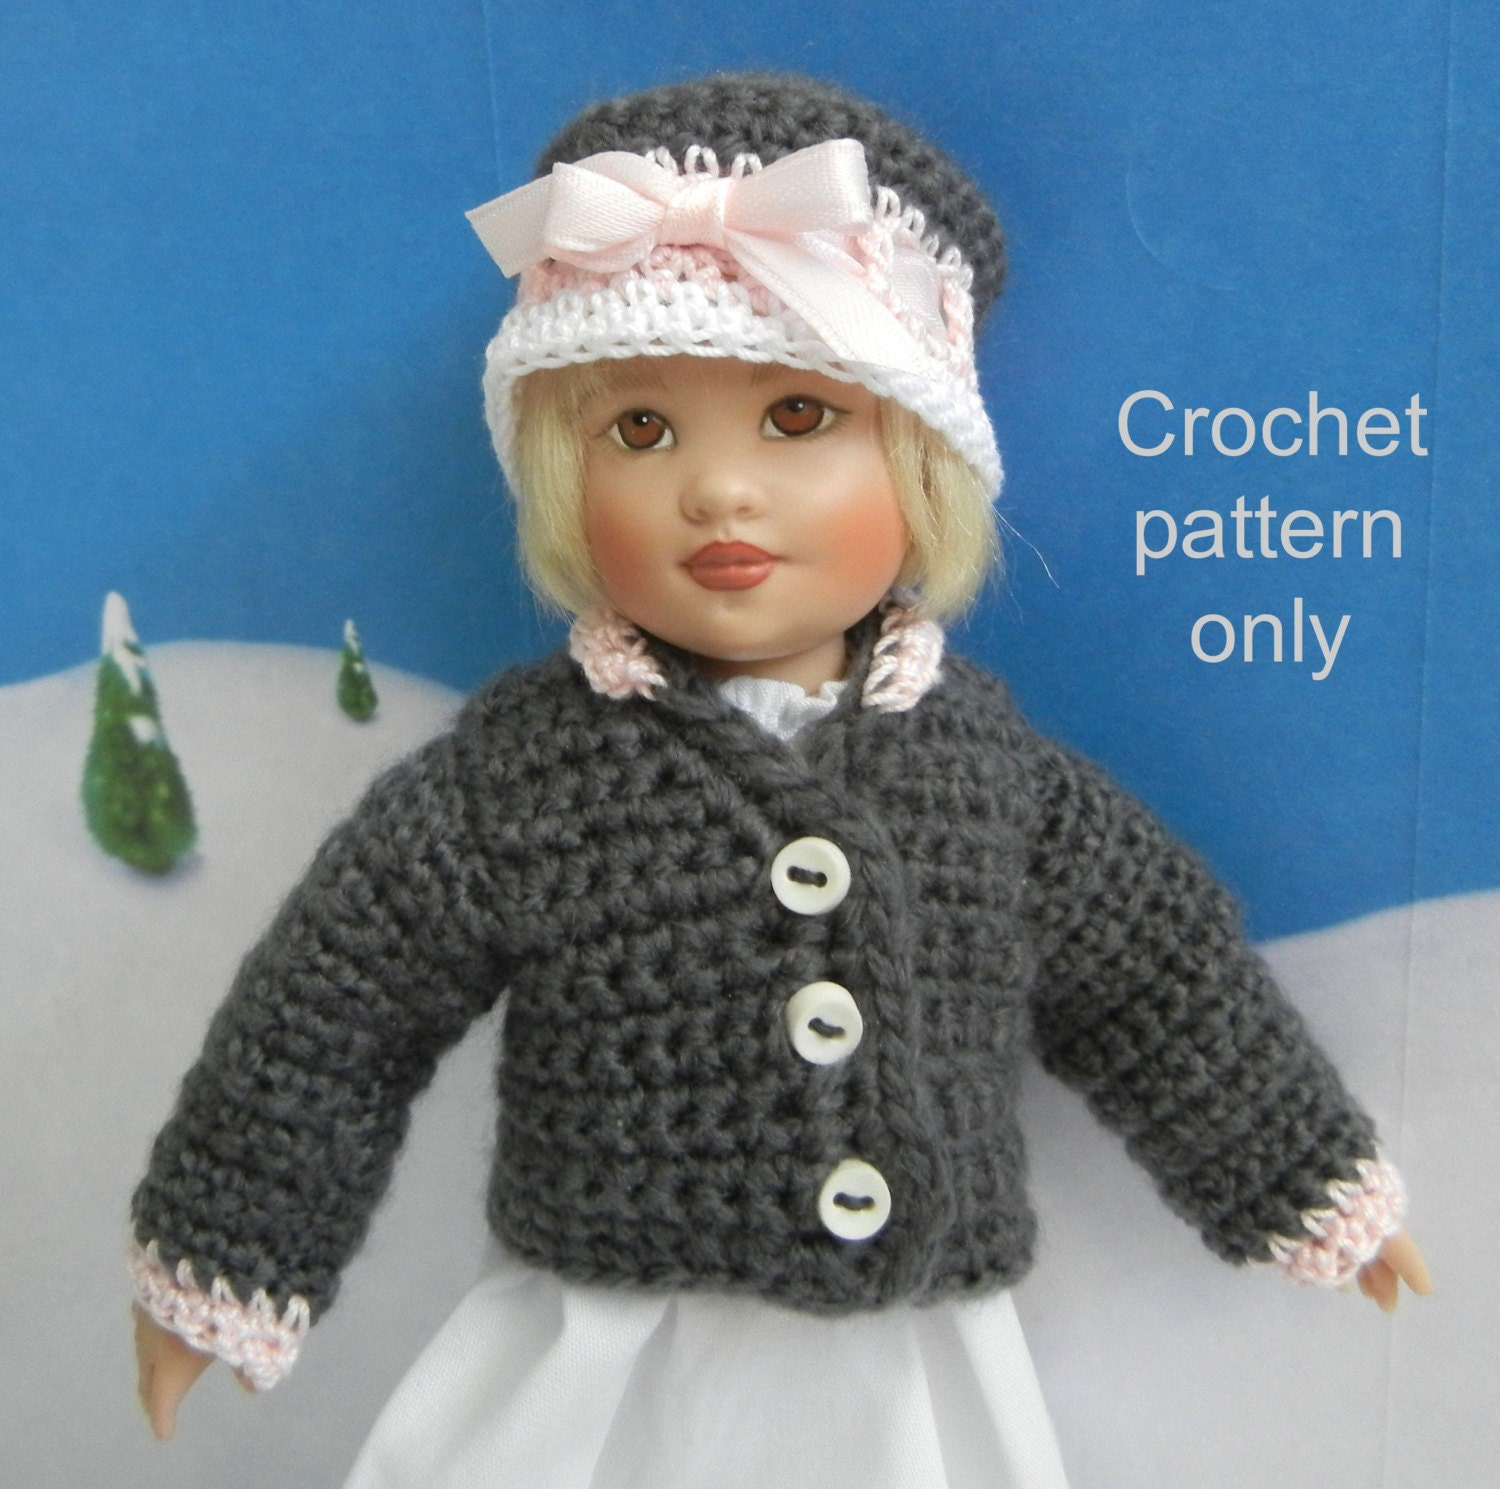 Crochet Doll Pattern Easy : Crochet pattern PDF for 7-8 inch child doll quick & easy